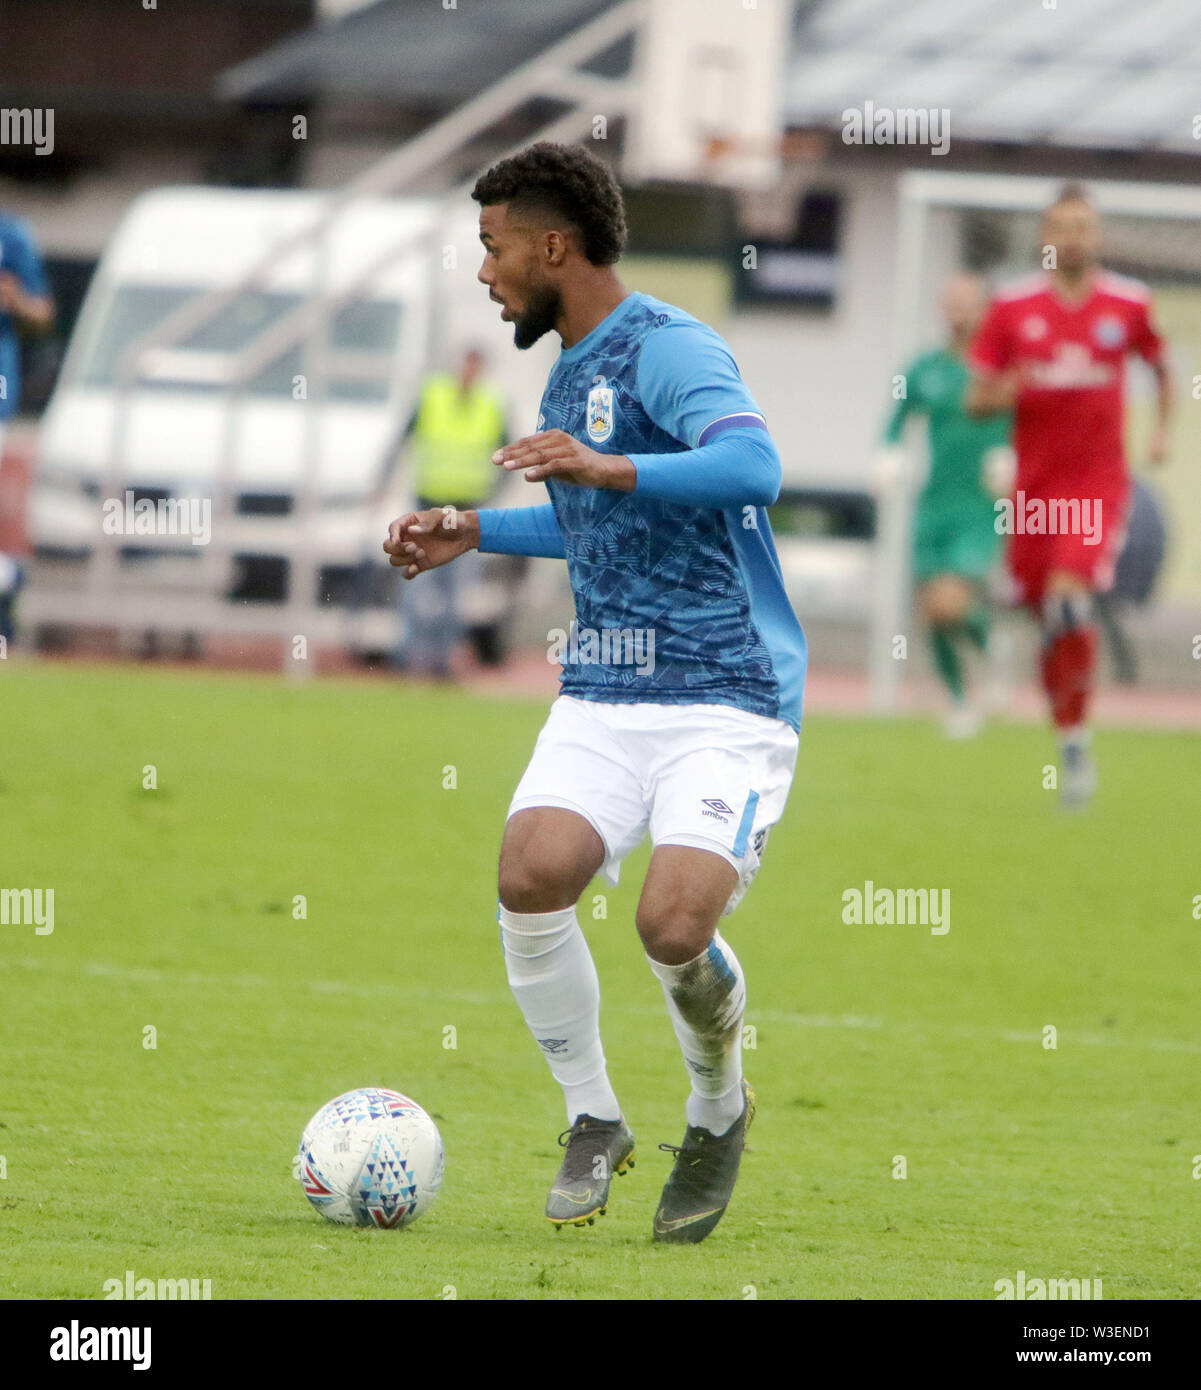 July 13, 2019 - Kitzbuehel, Austria - Elias KACHUNGA (Huddersfield), .pre season friendly 2019/20, .Huddersfield Town FC vs Hamburger SV,.Stadion Kitzbuehel/Austria, July 13, 2019, .Huddersfield Town, the relegated team of the Premiere League wins in a pre season friendly against the former German champion Hamburger SV. (Credit Image: © Wolfgang Fehrmann/ZUMA Wire) - Stock Image